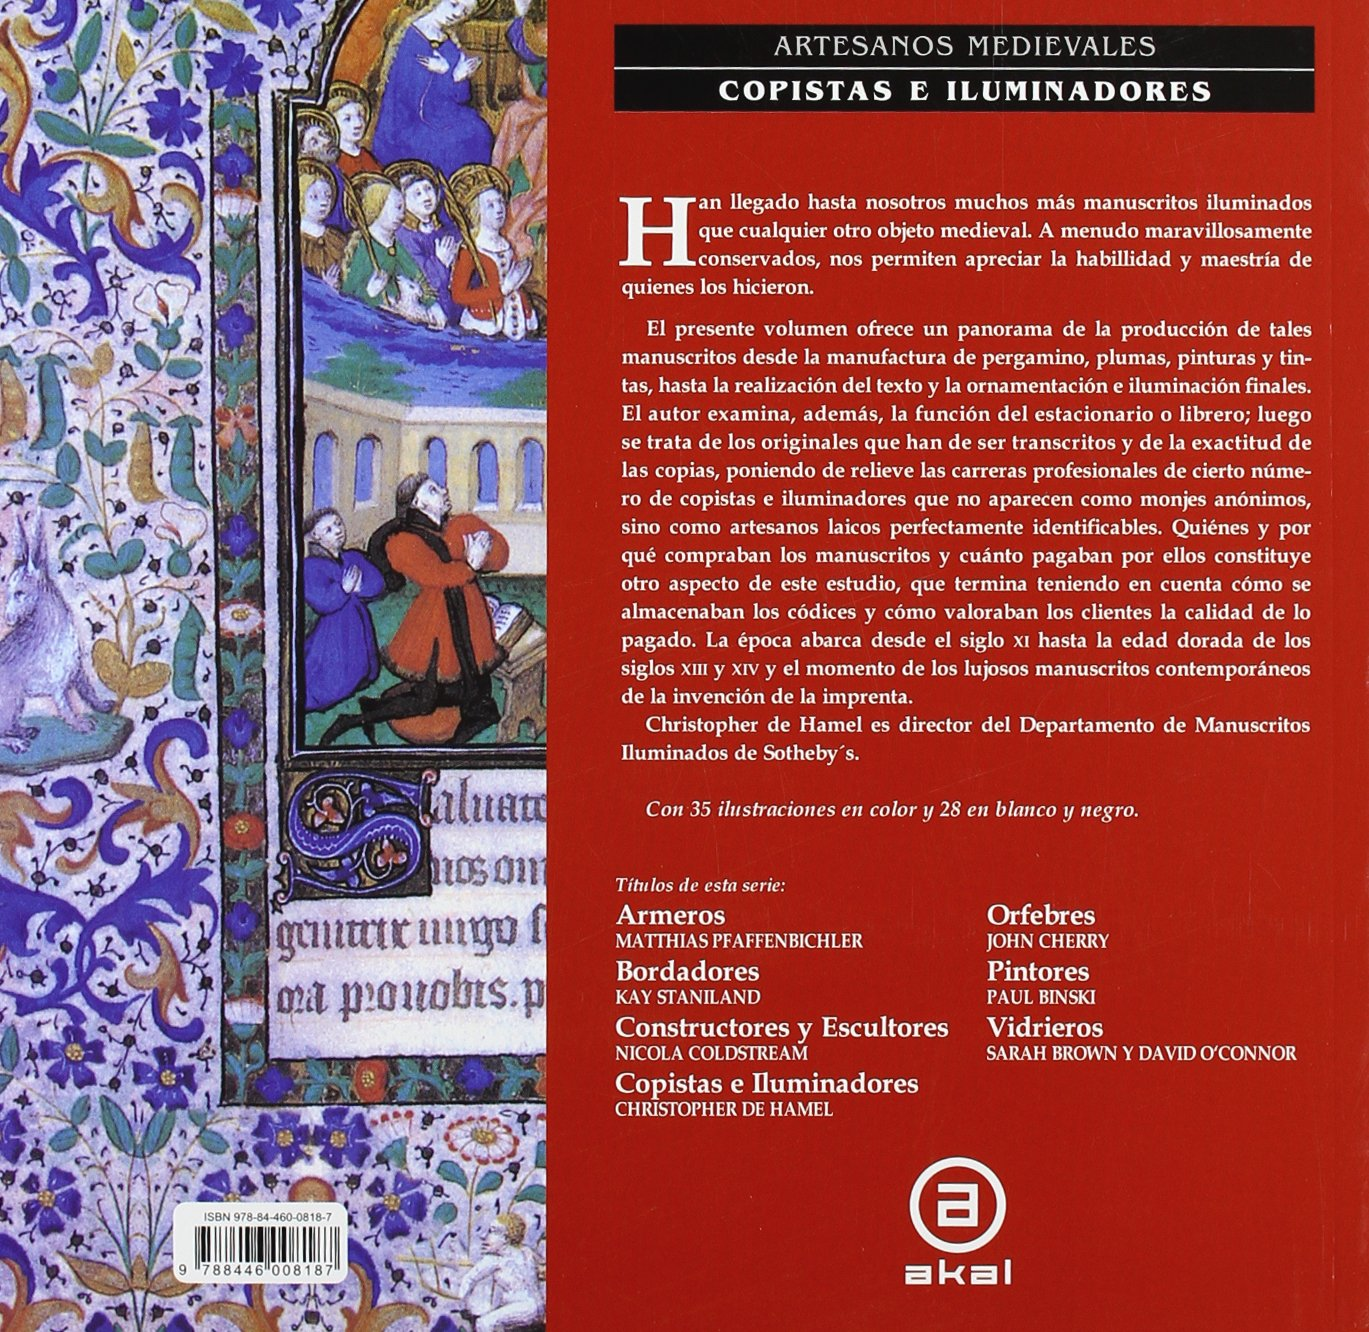 Copistas E Iluminadores - Artesanos Medievales (Spanish Edition): Christopher de Hamel: 9788446008187: Amazon.com: Books